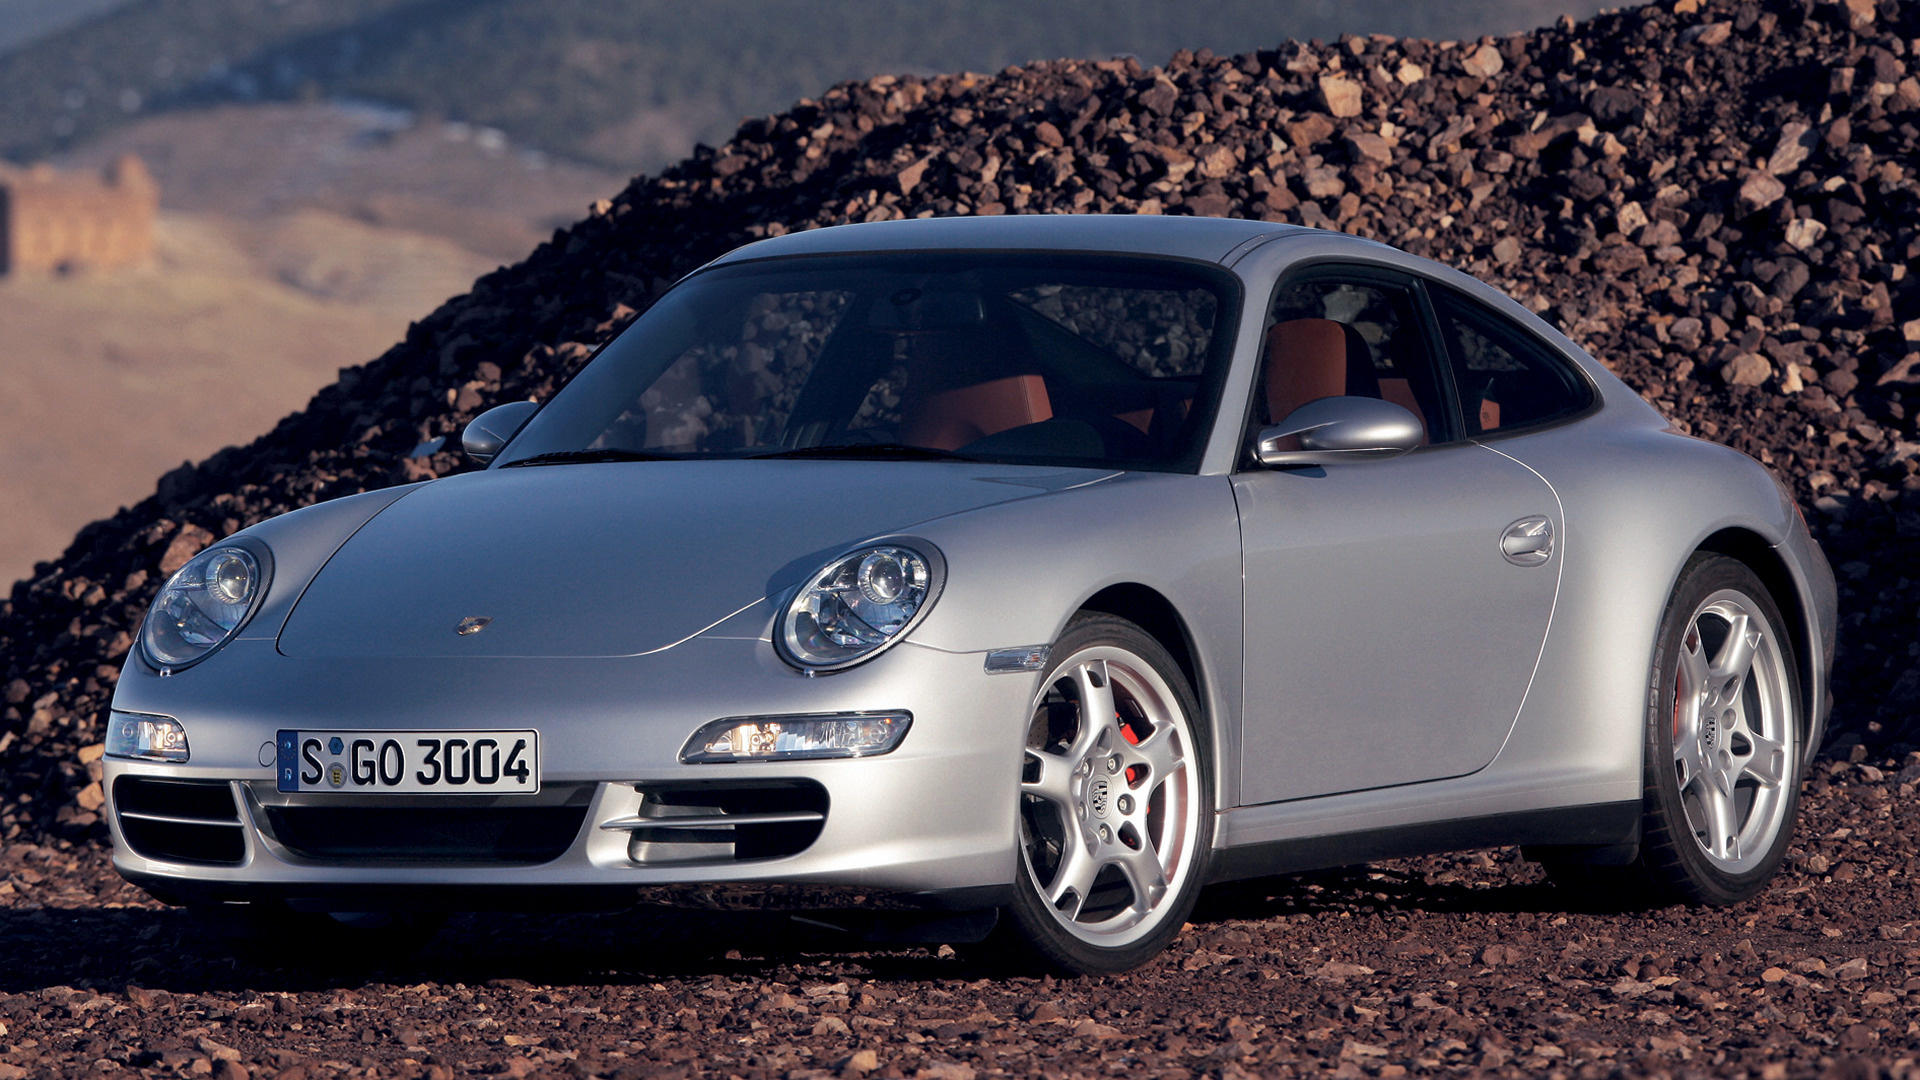 Porsche 911 carrera s 2005 wallpapers and hd images - Porsche 911 carrera s wallpaper ...